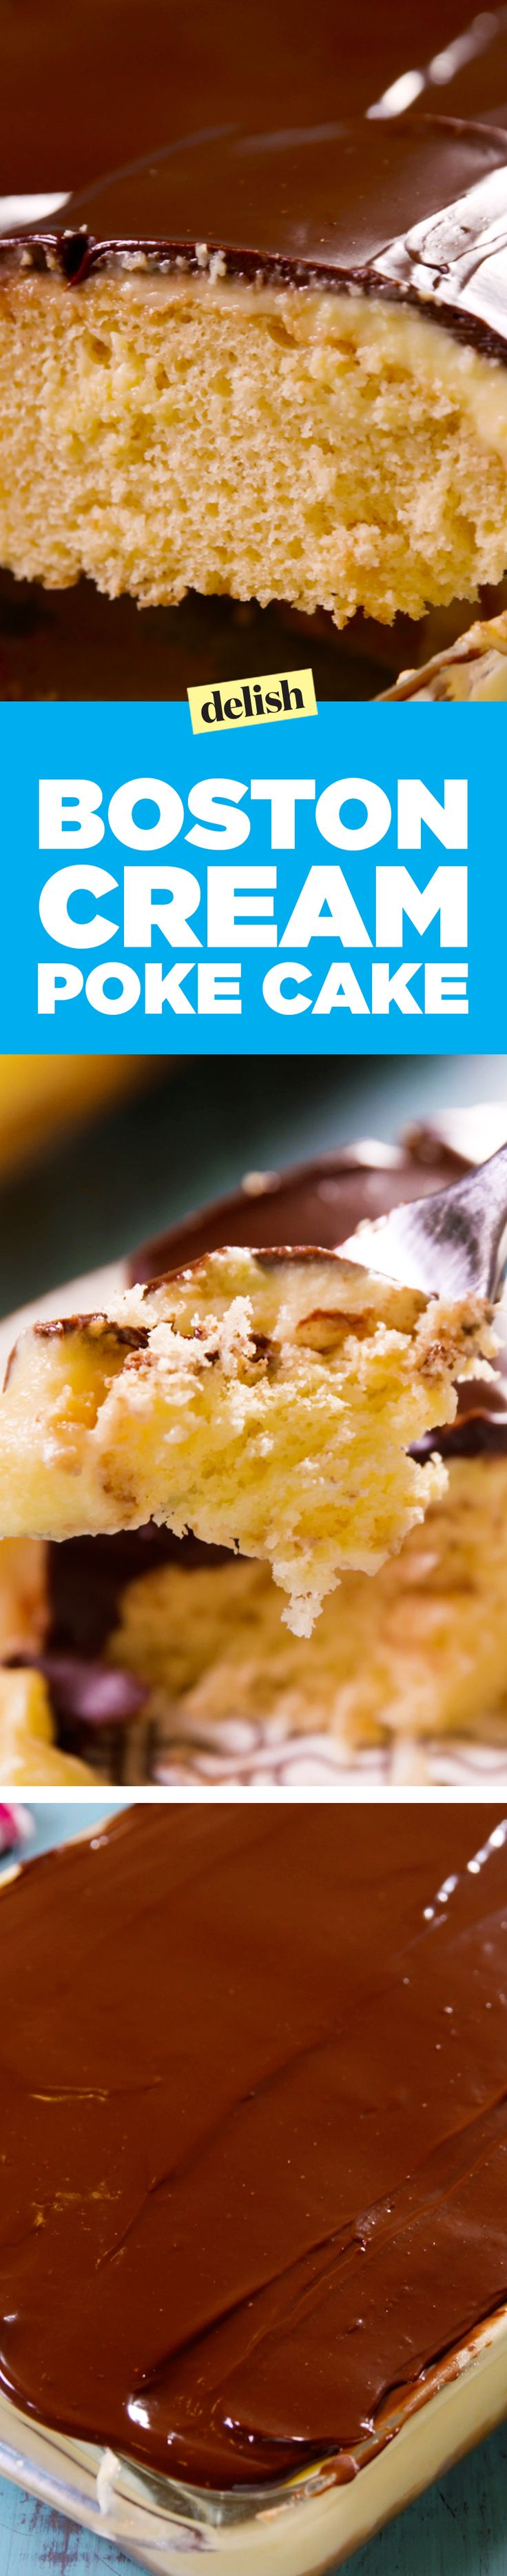 This Boston cream poke cake is wicked easy and amazing. Get the recipe on Delish.com.